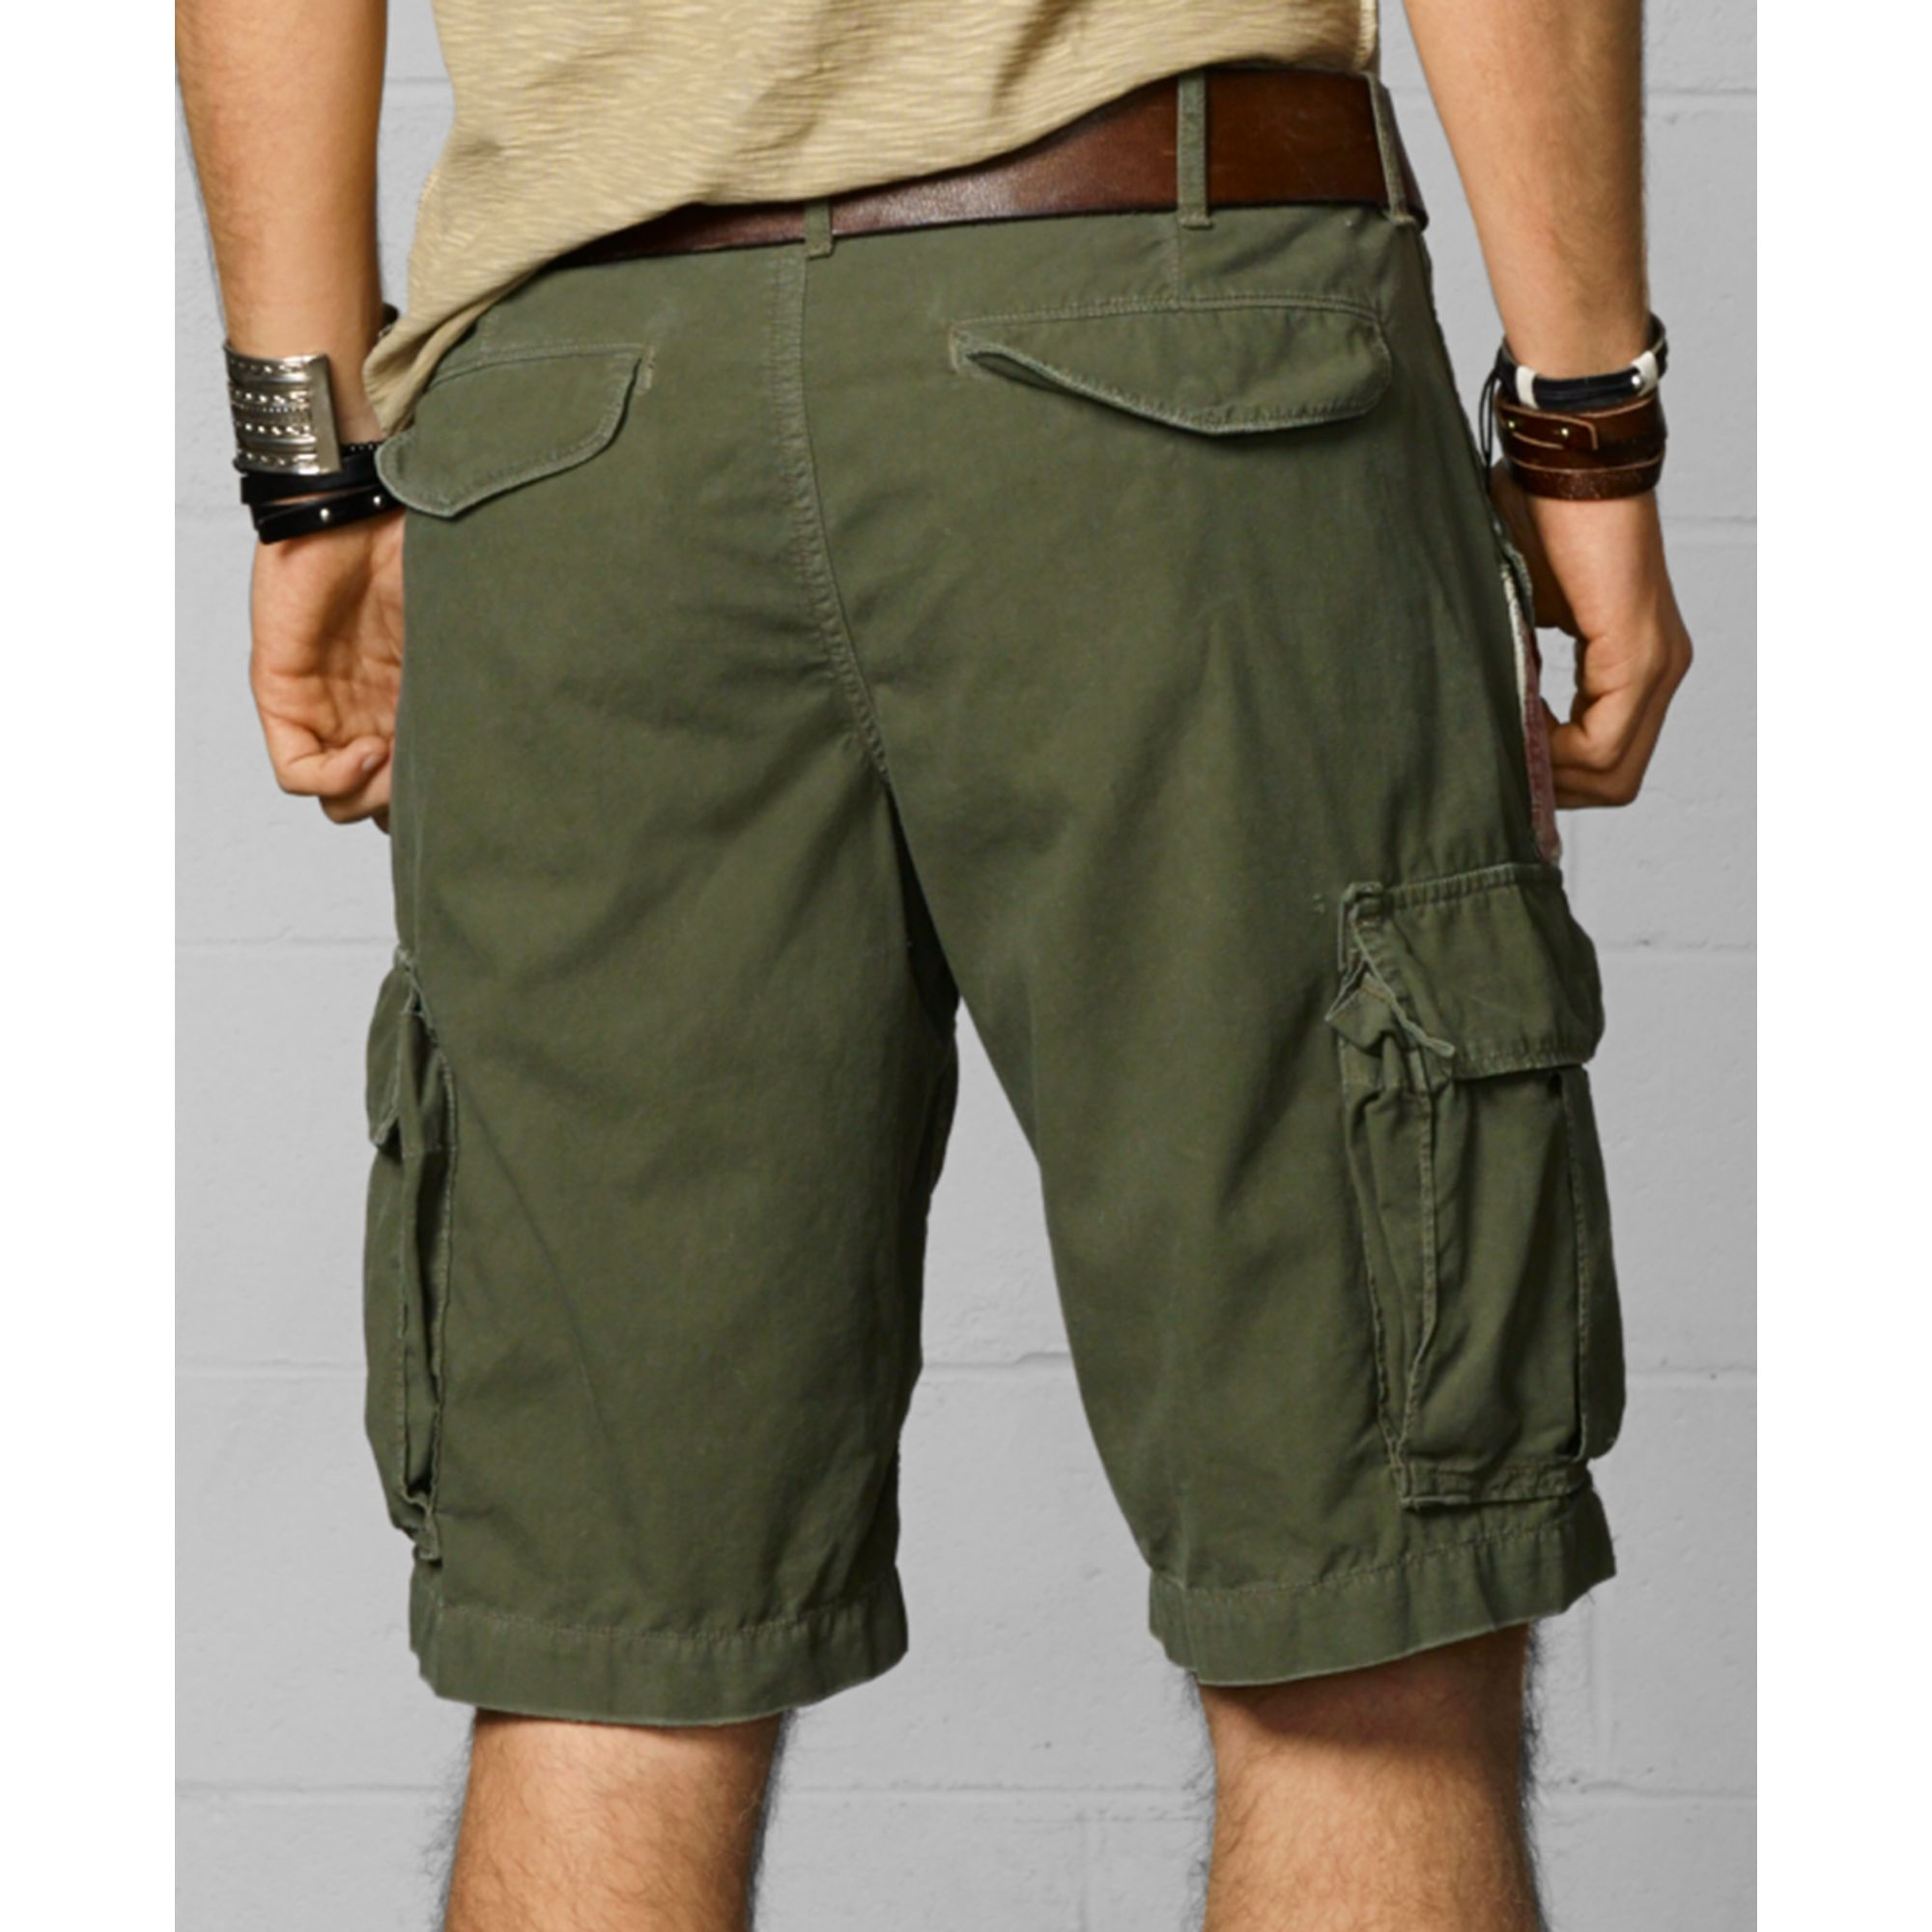 Find great deals on eBay for cargo supply shorts. Shop with confidence.